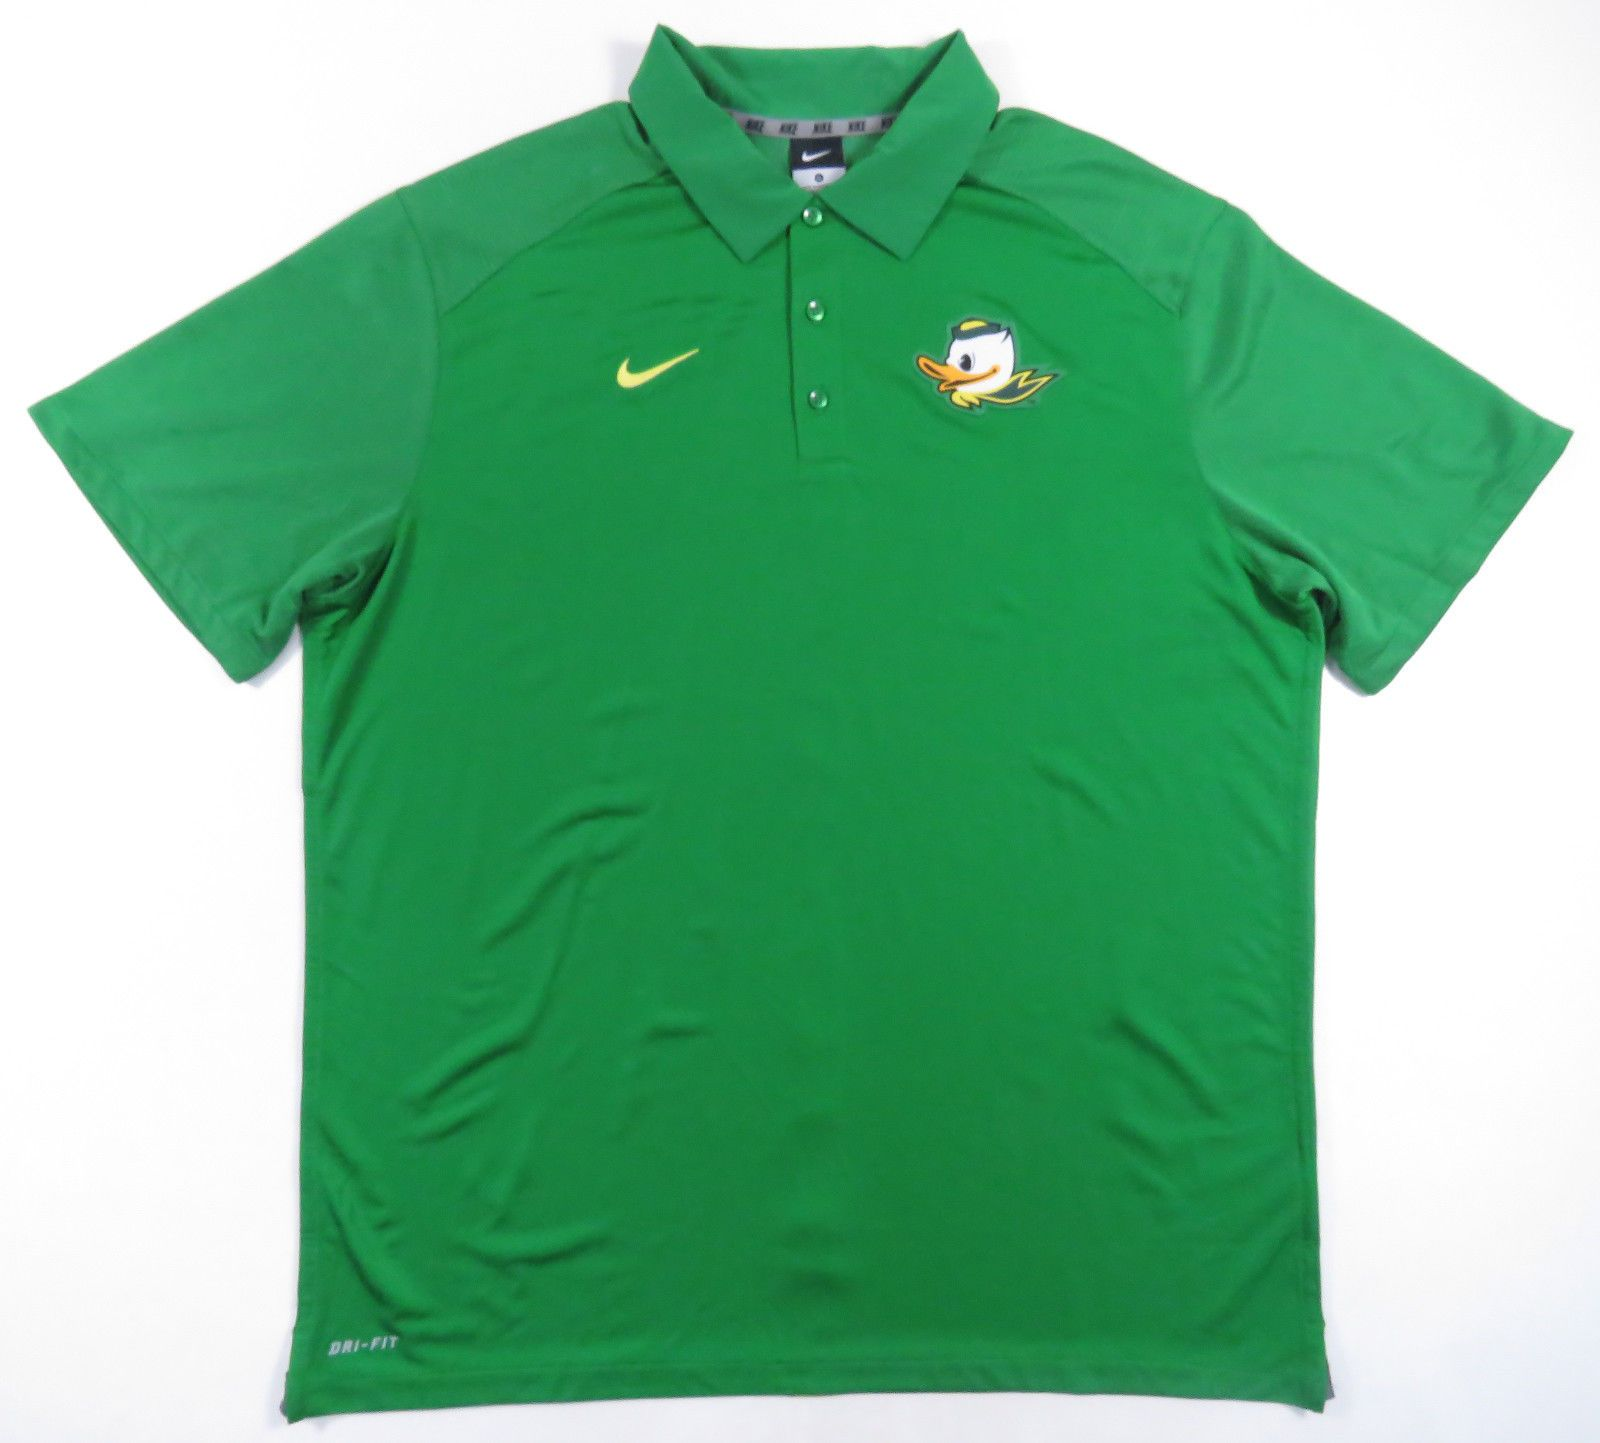 Oregon Ducks Nike Dri Fit Football Green Duck Logo Polo Shirt New